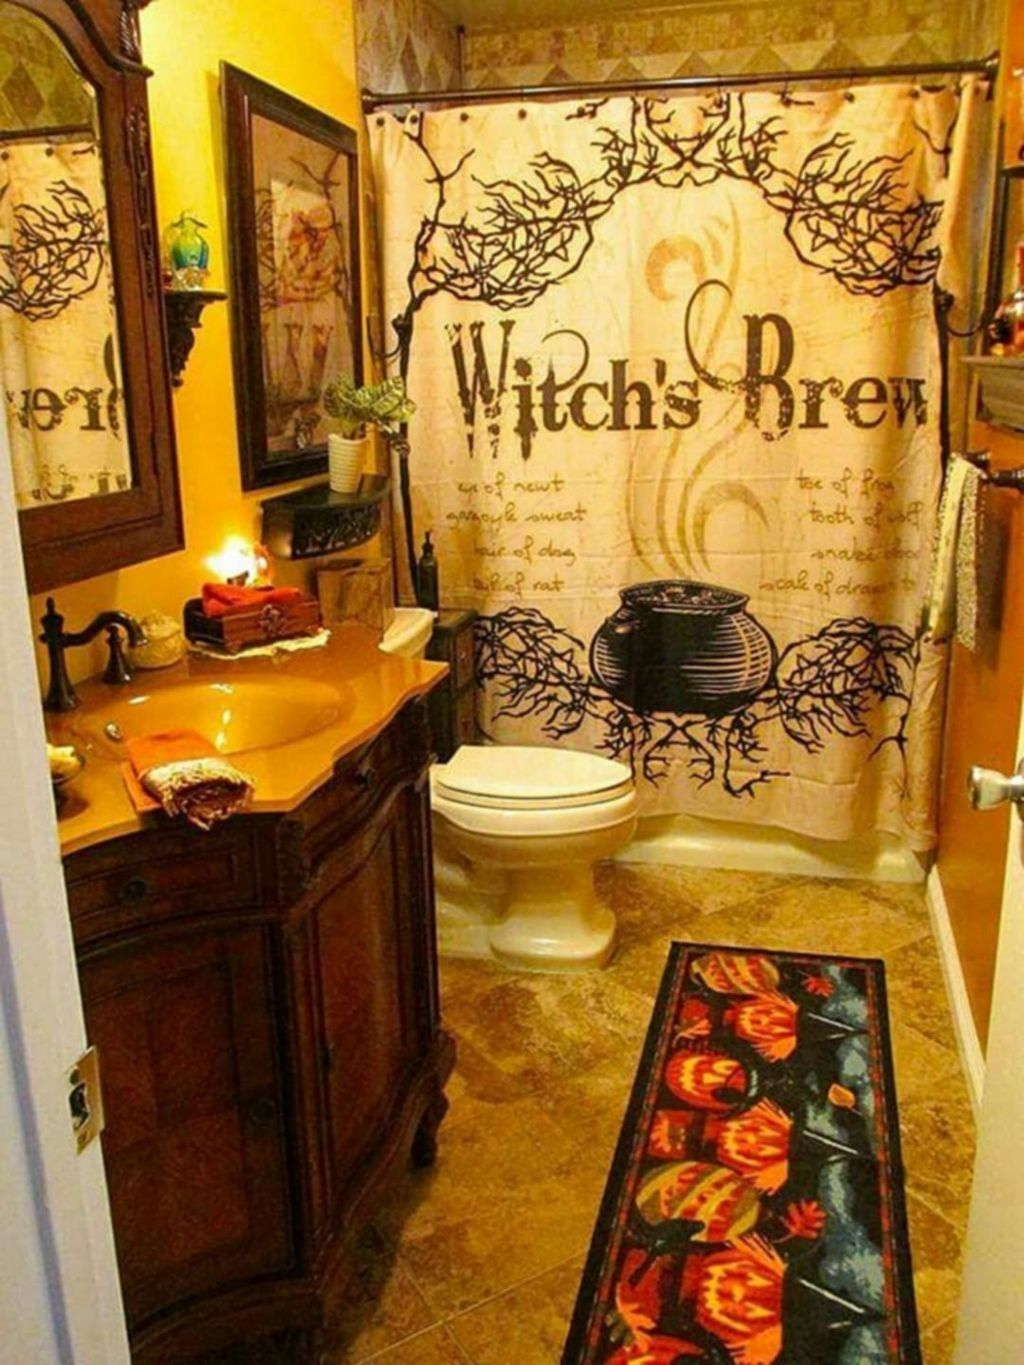 30 Scary Halloween Decorating Ideas For Your Bathroom Halloween Bathroom Decorations Gothic Bathroom Gothic Bathroom Decor